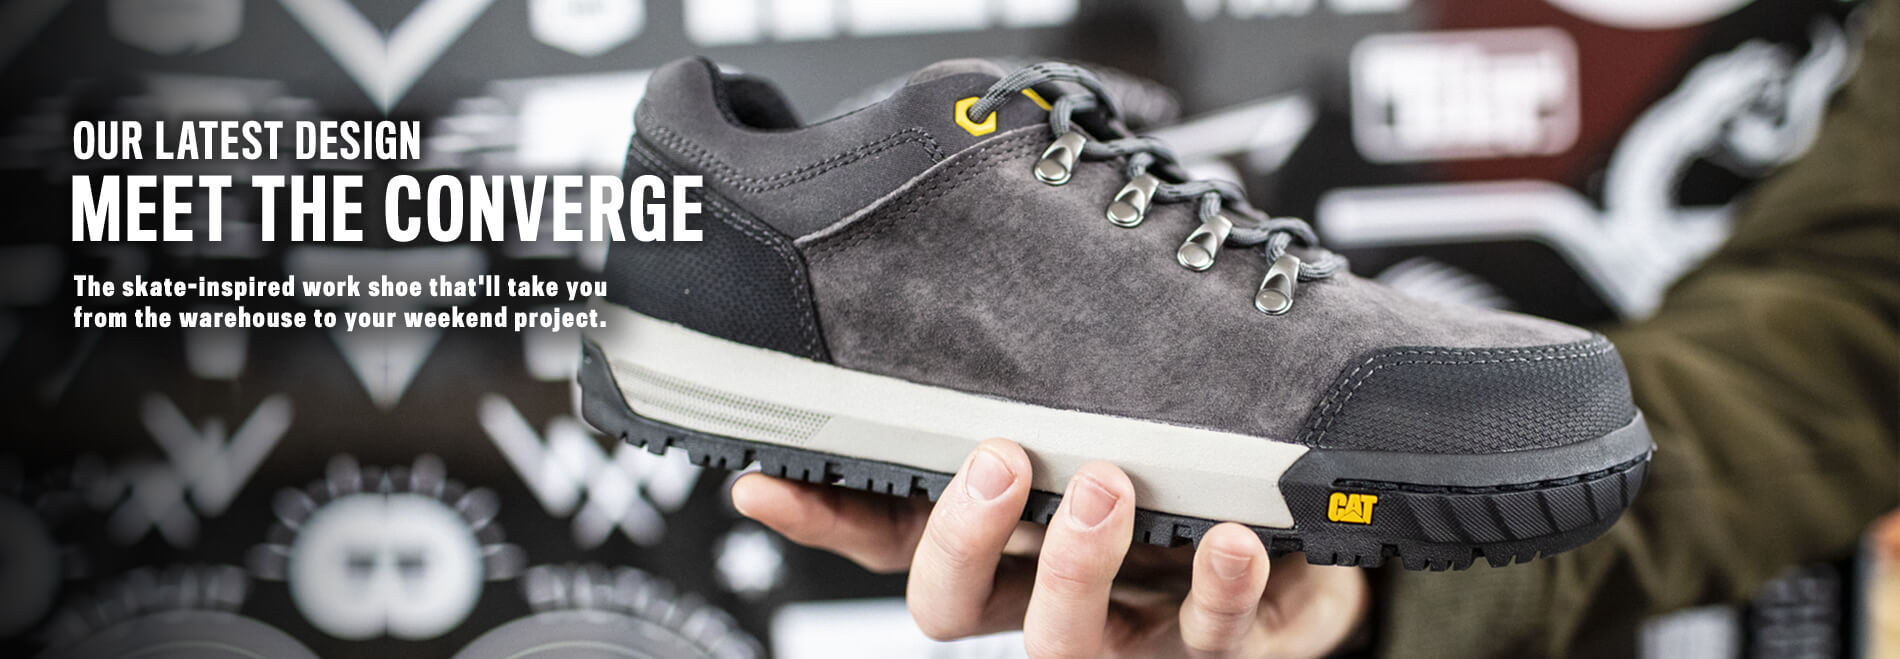 Our latest design | Meet The Converge | The skate-inspired work shoe that'll take you from the warehouse to your weekend project.